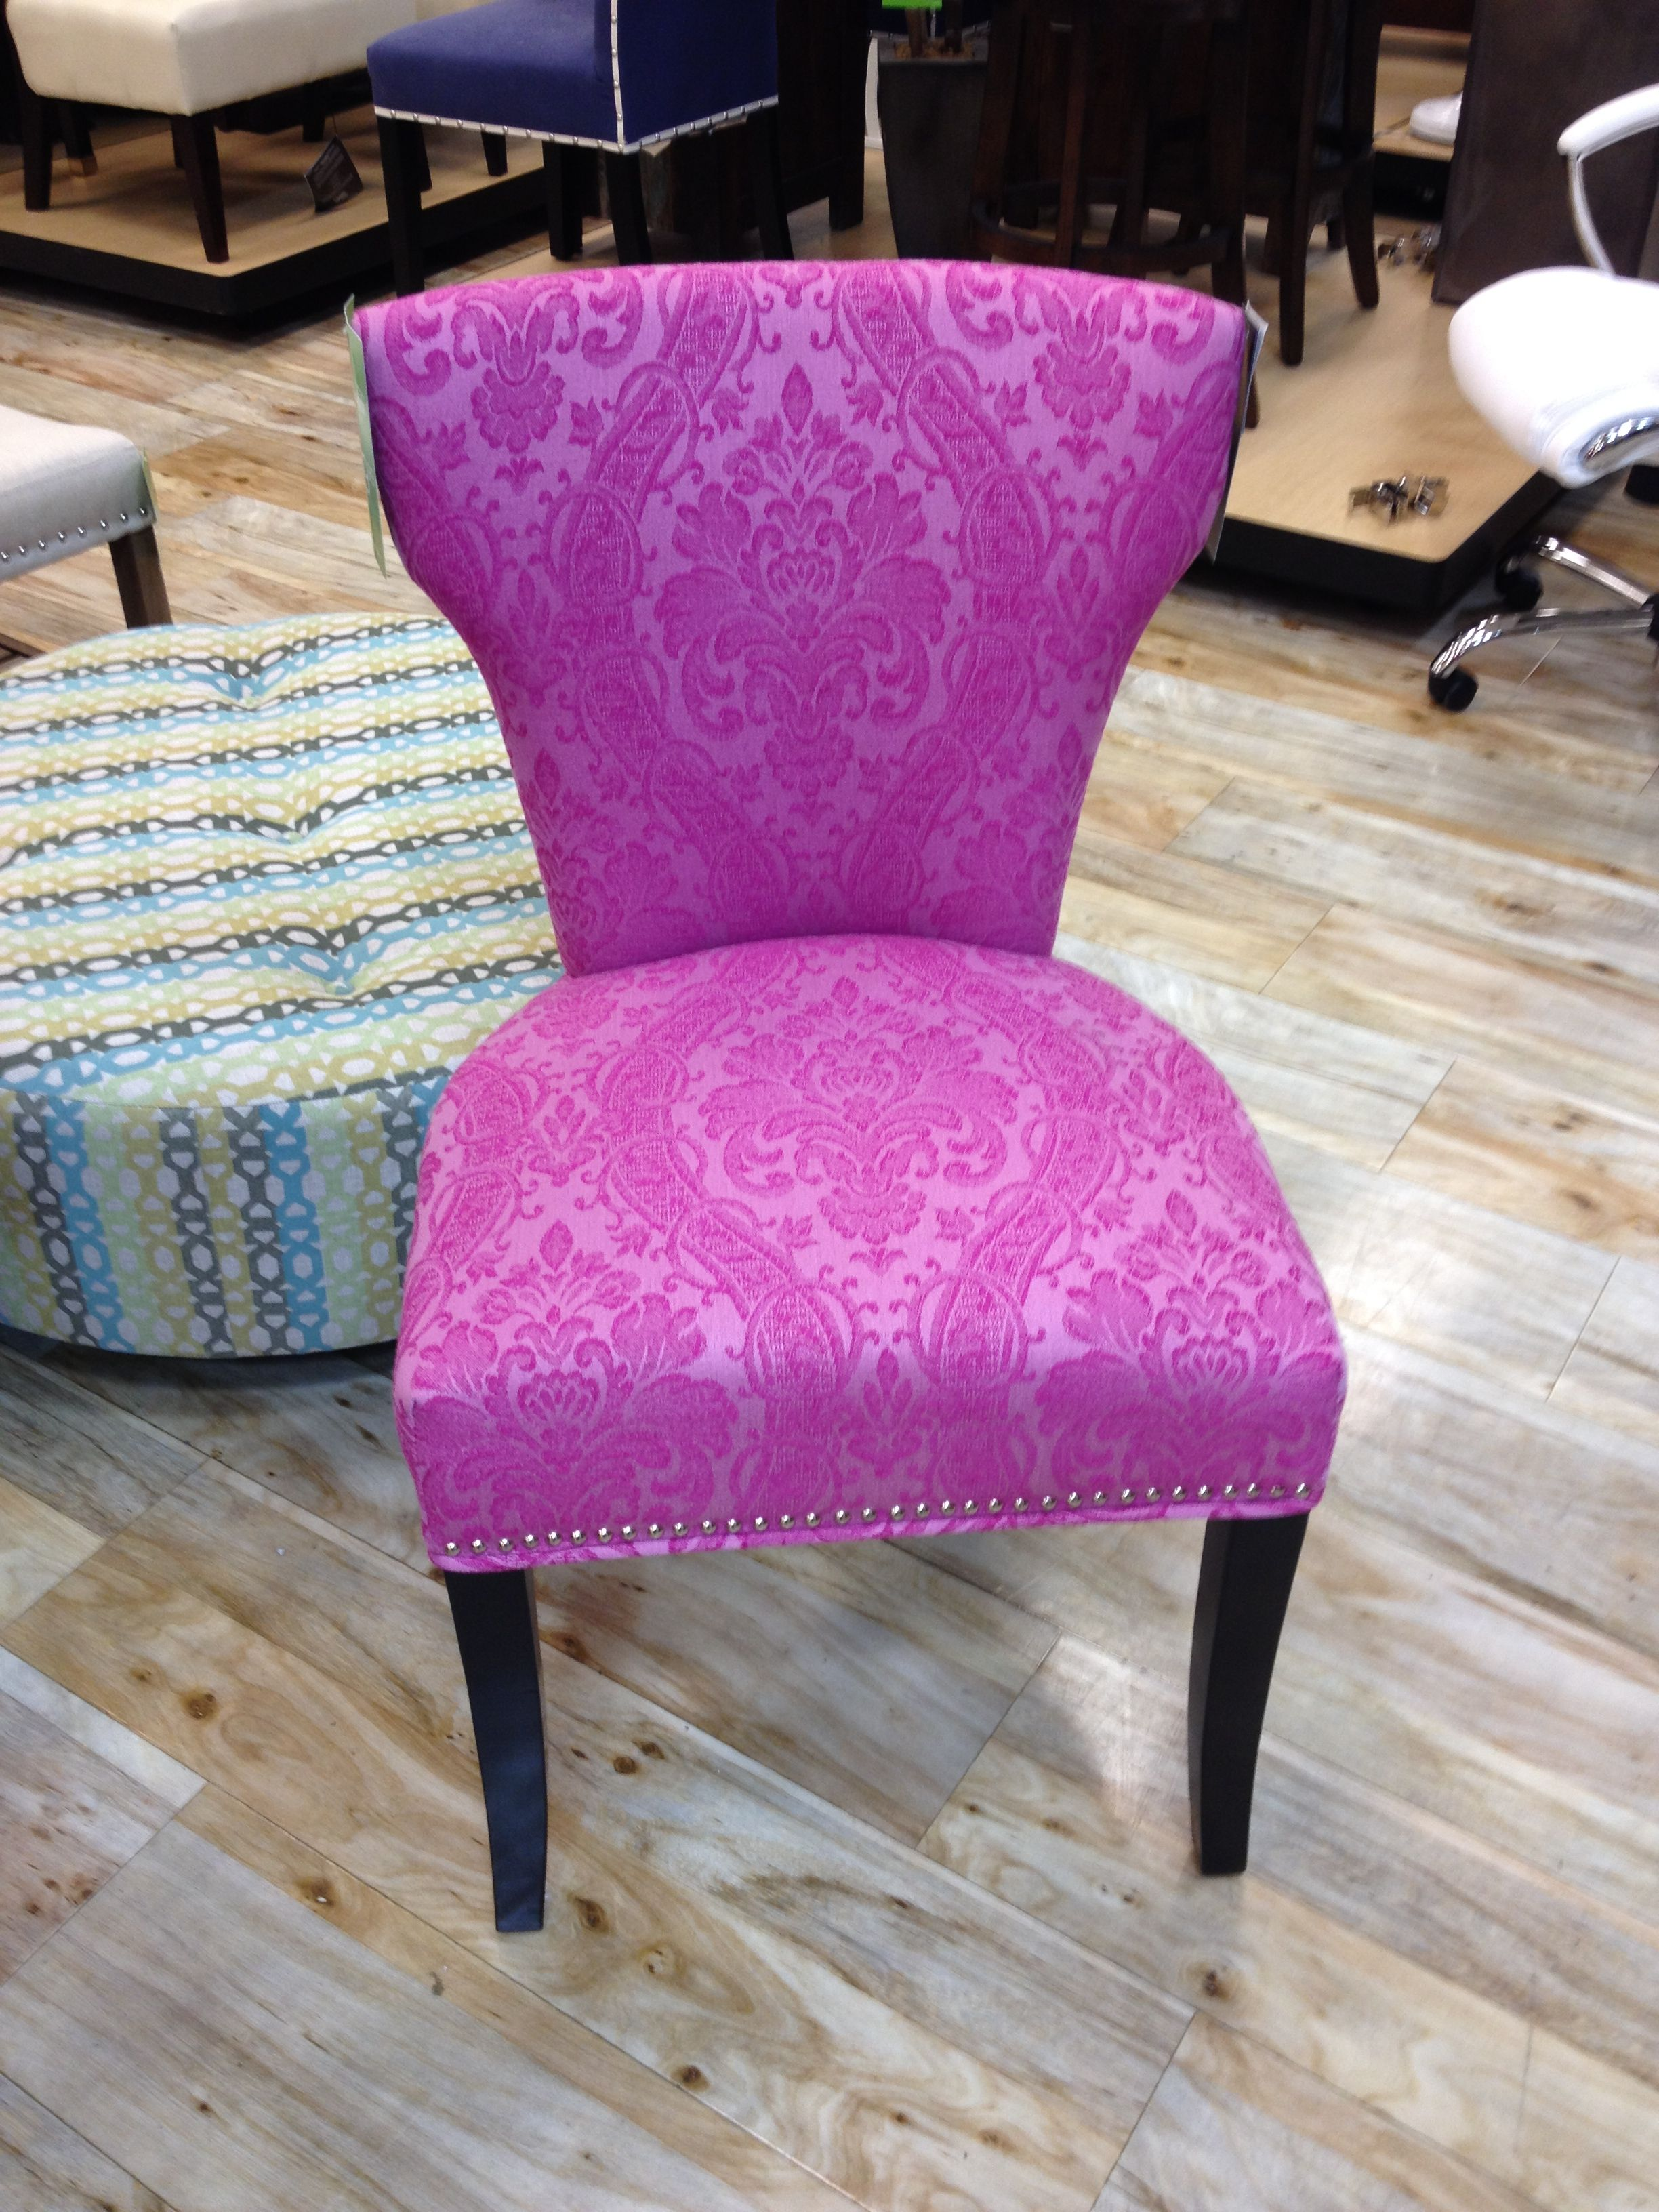 Tjmaxx Chairs Cynthia Rowley Chair At Home Goods 129 I Just Bought